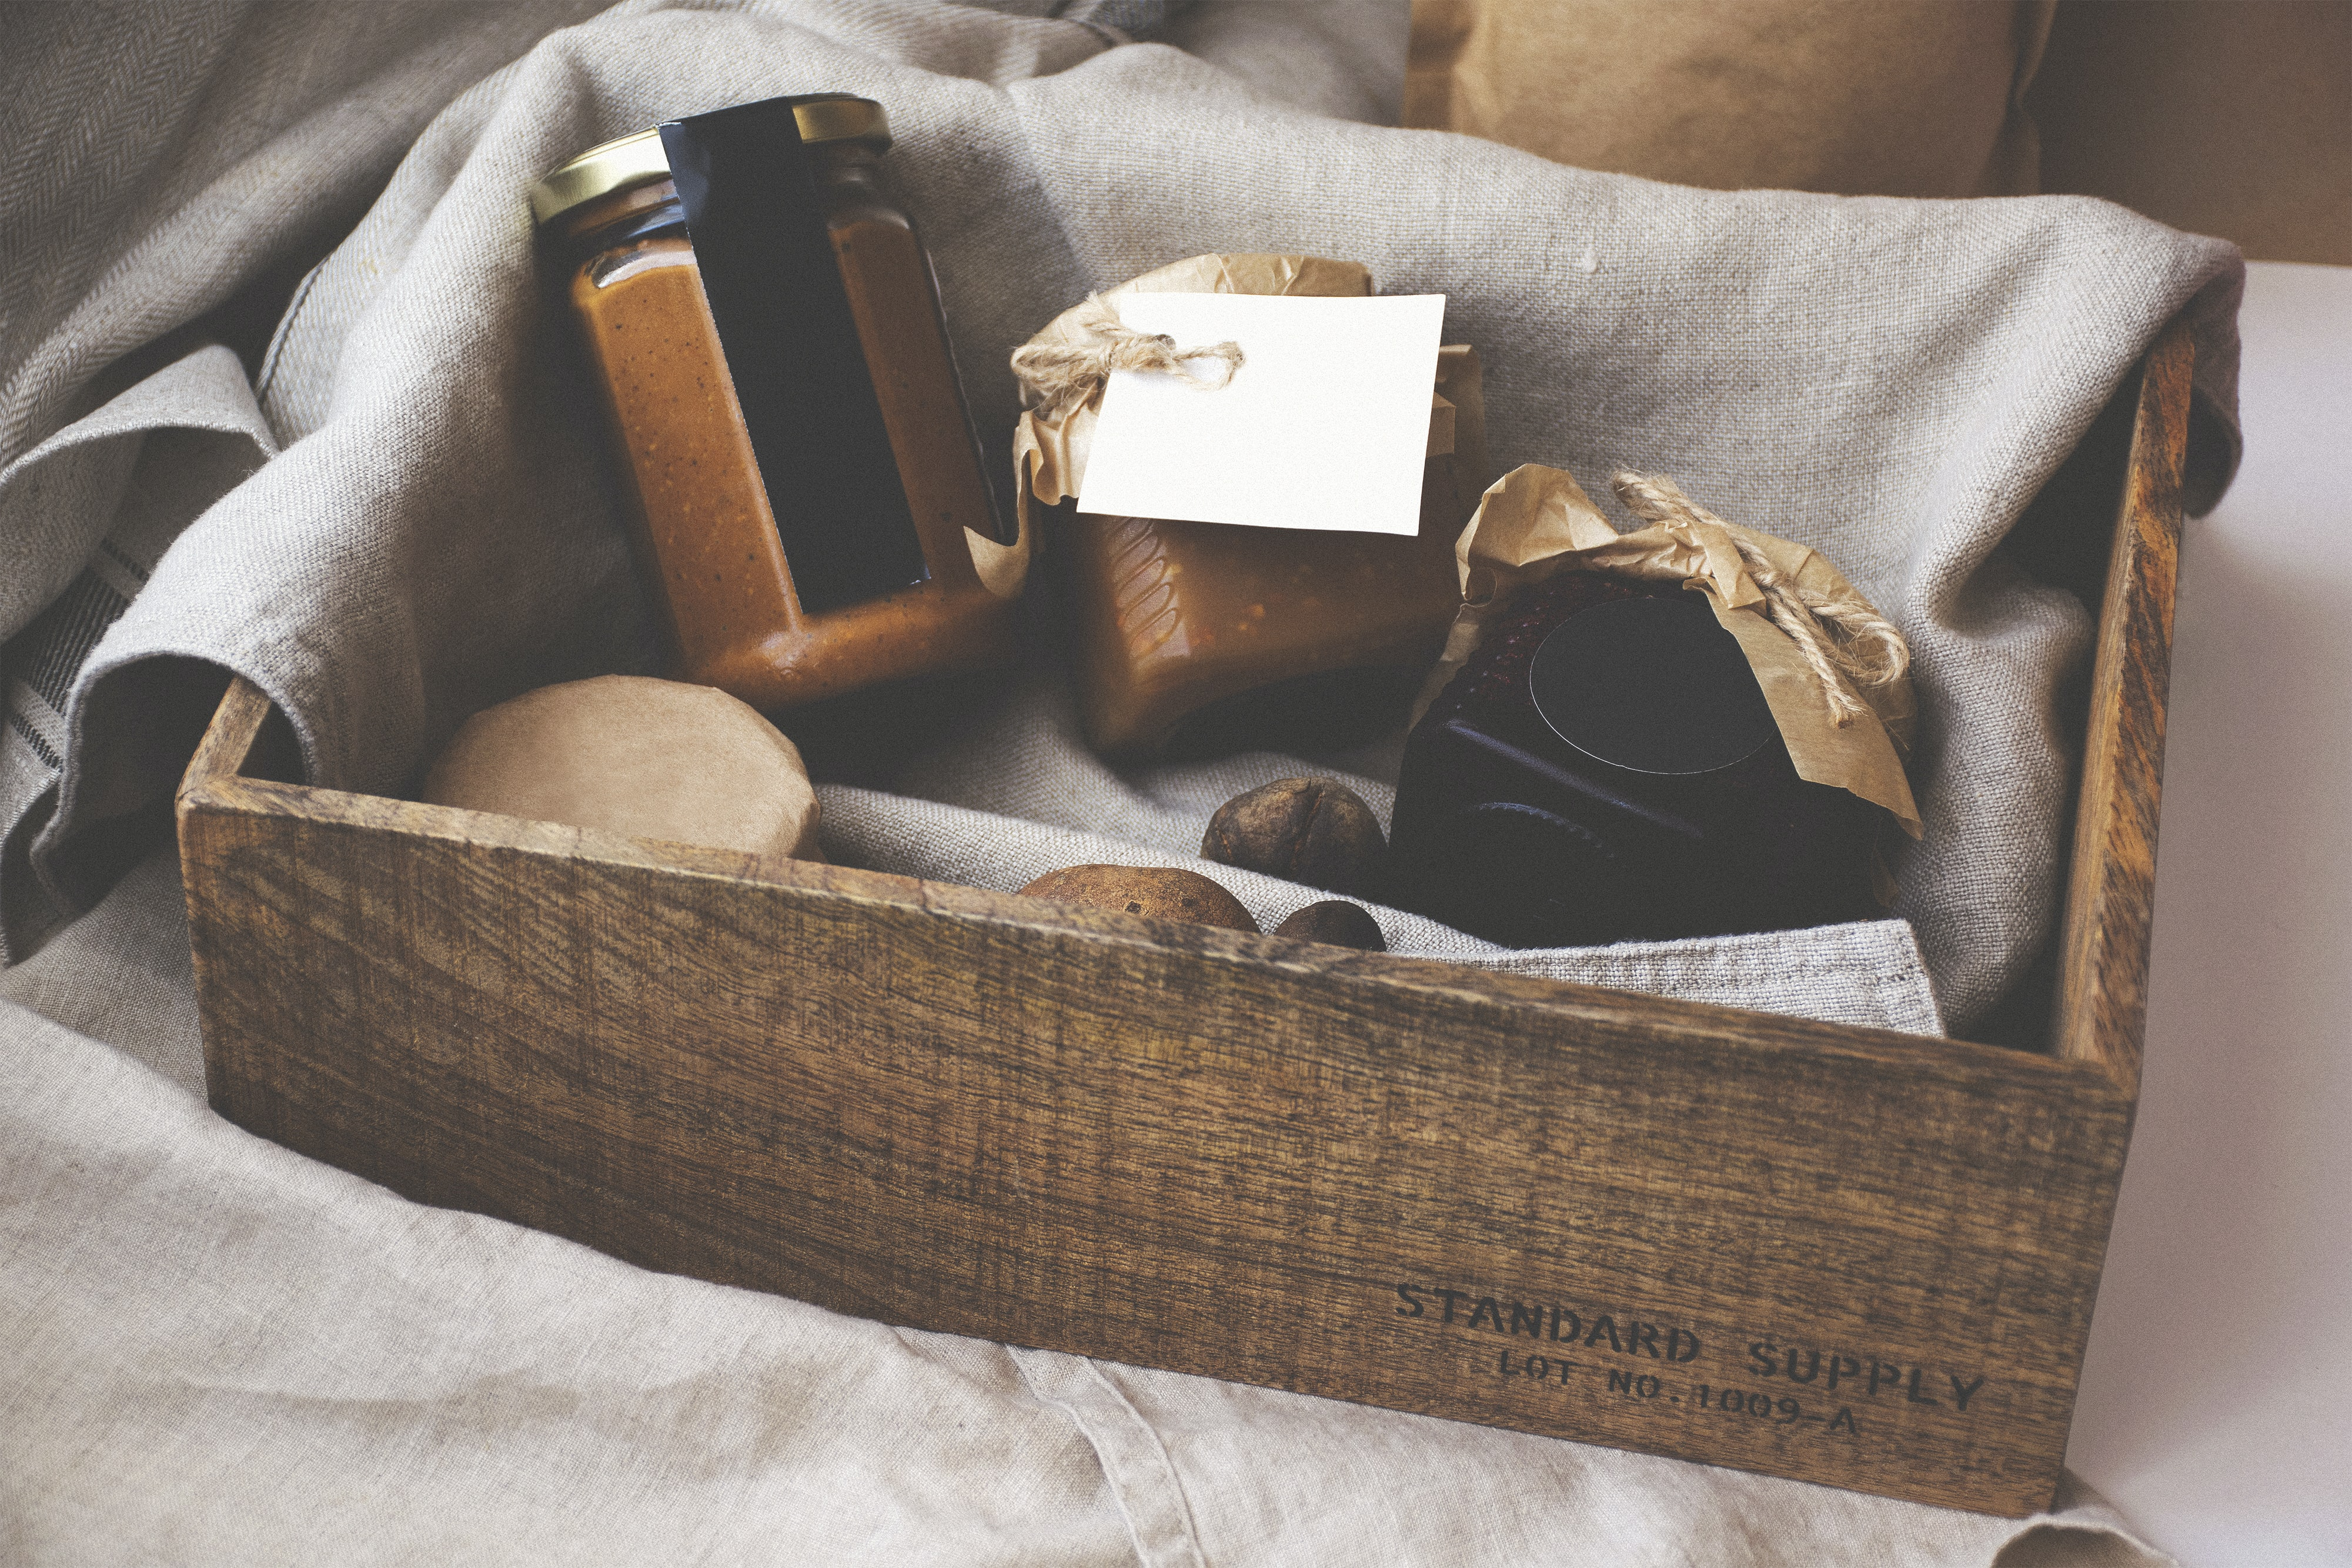 A small wooden crate with preserves in jars